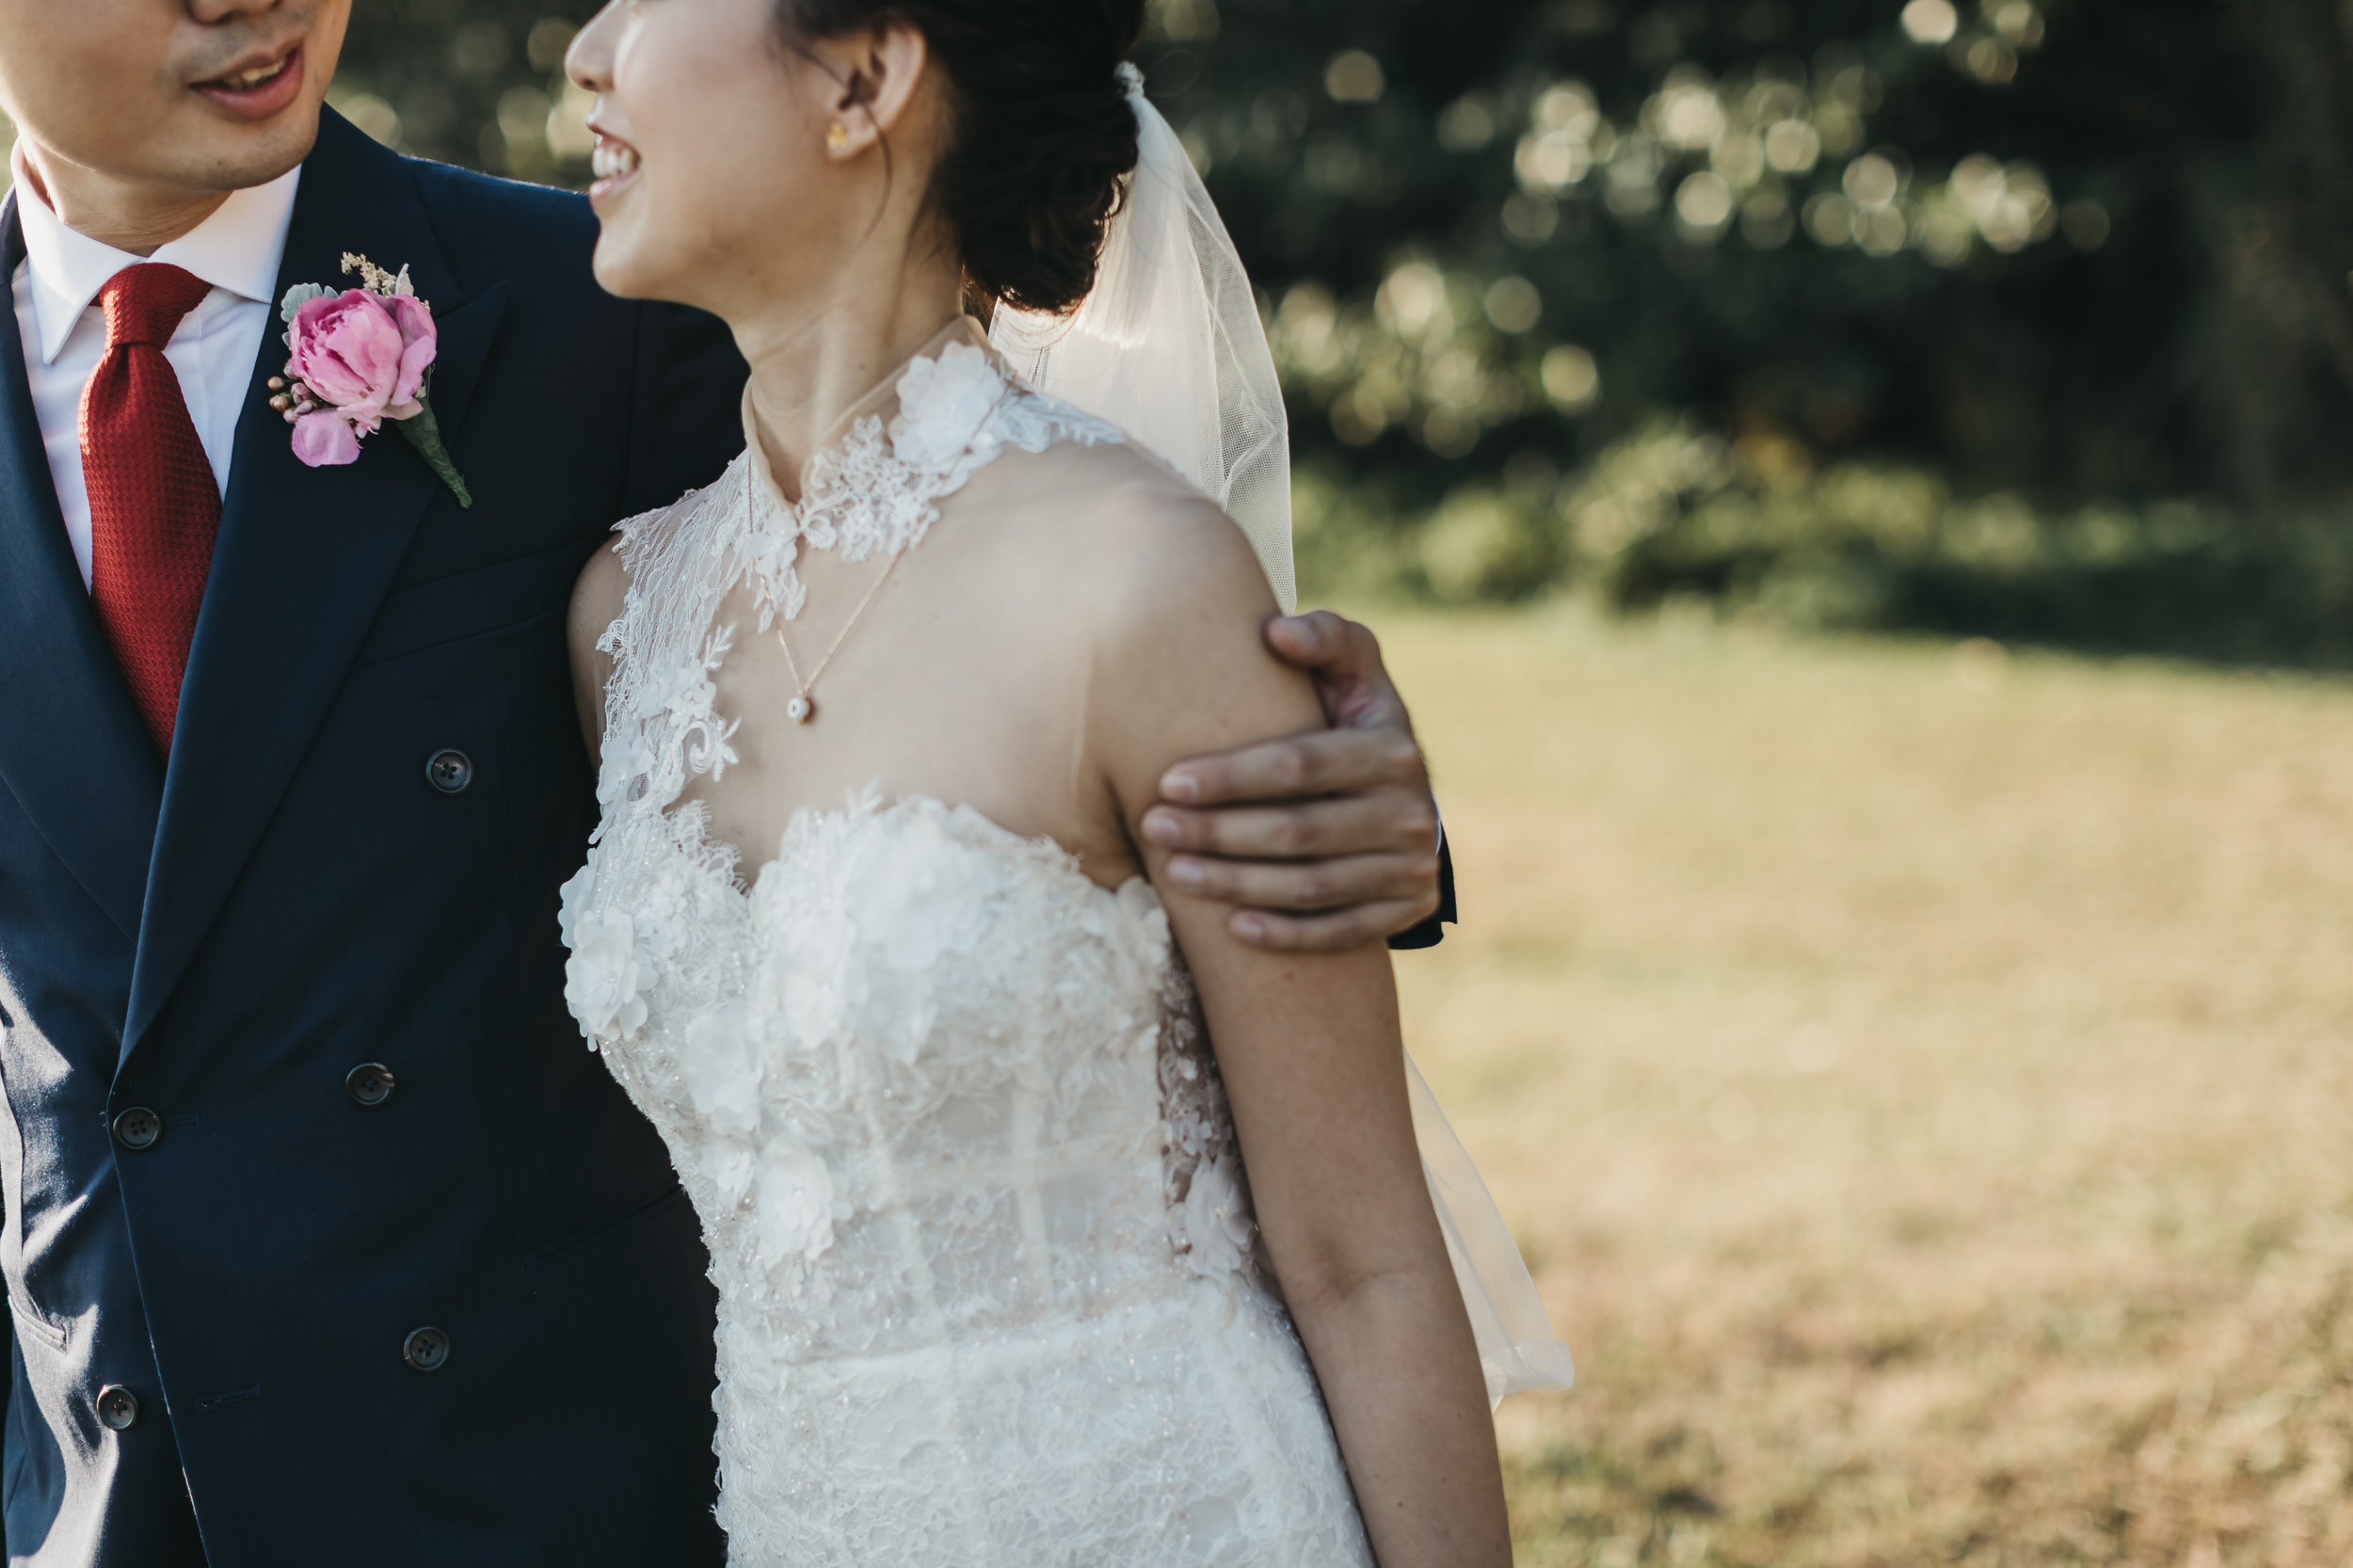 Cecilia + Aaron's Wedding Day  (Photographed by Tinydot Photography)